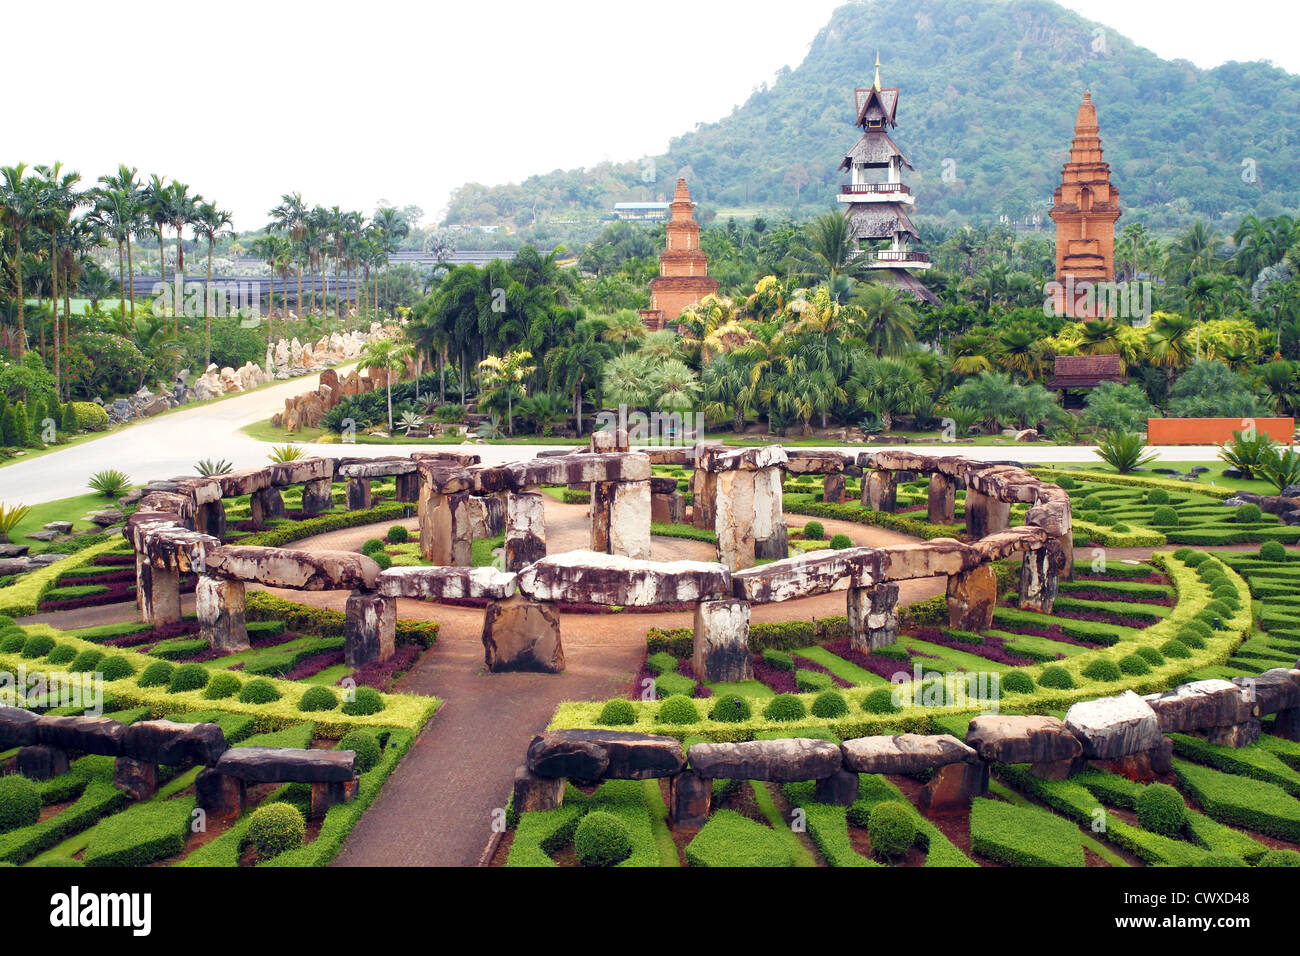 Park nong nooch in Thailand, shrubberies grow in geometric figures - Stock Image